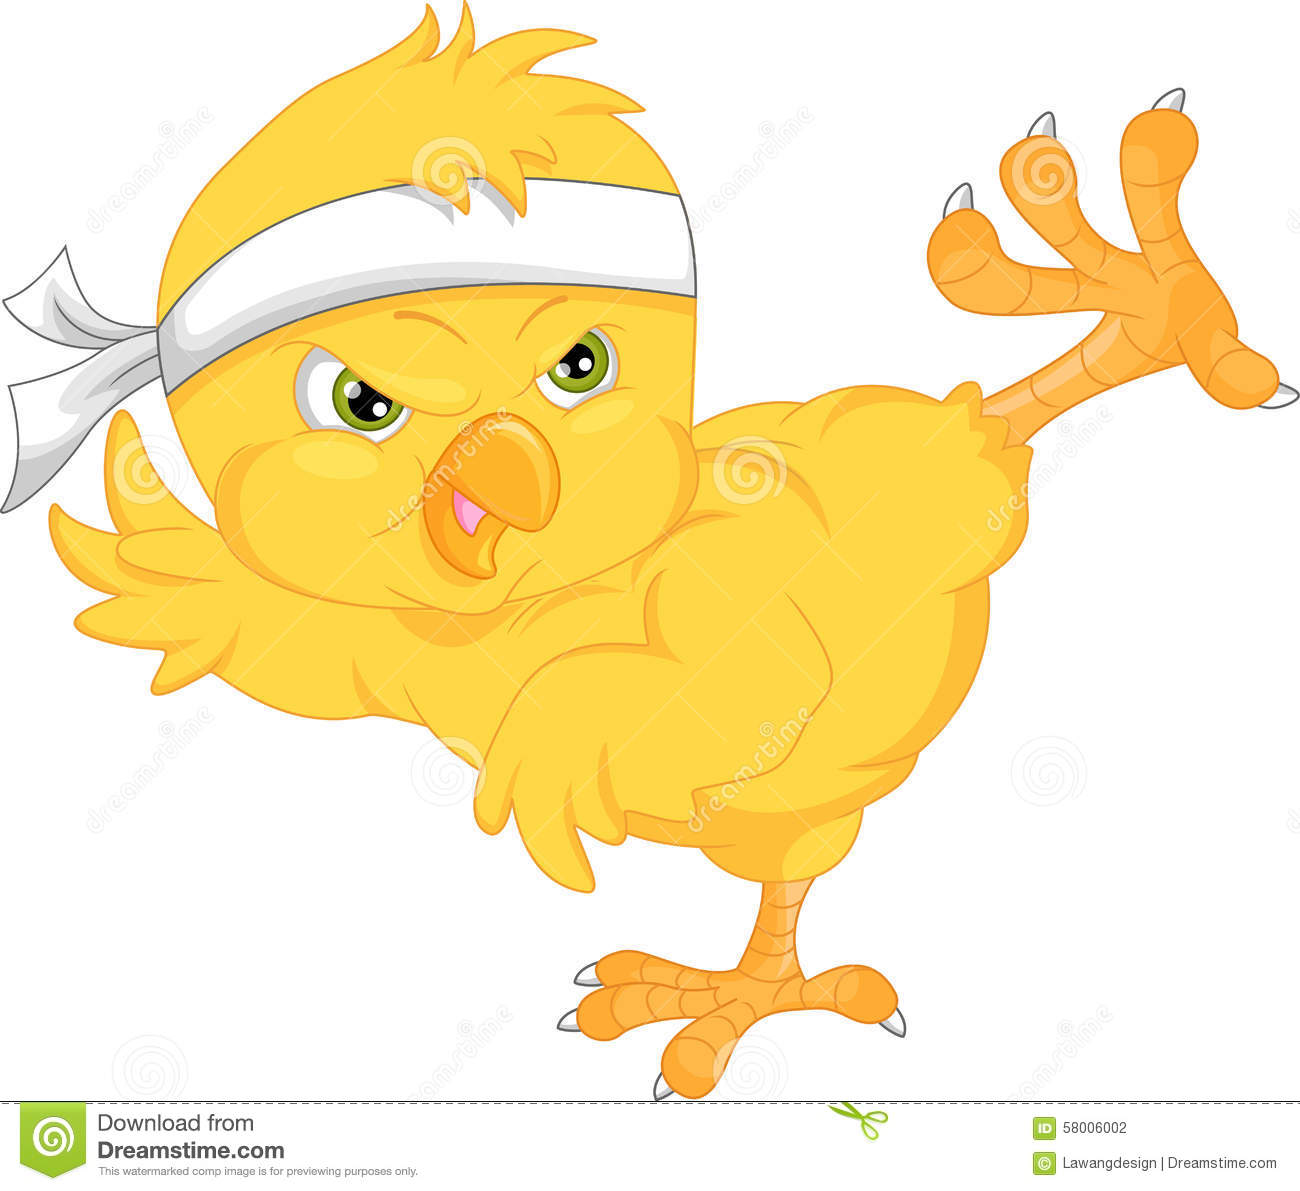 Stock Illustration Cute Chick Cartoon Vector Illustration Image5800600...